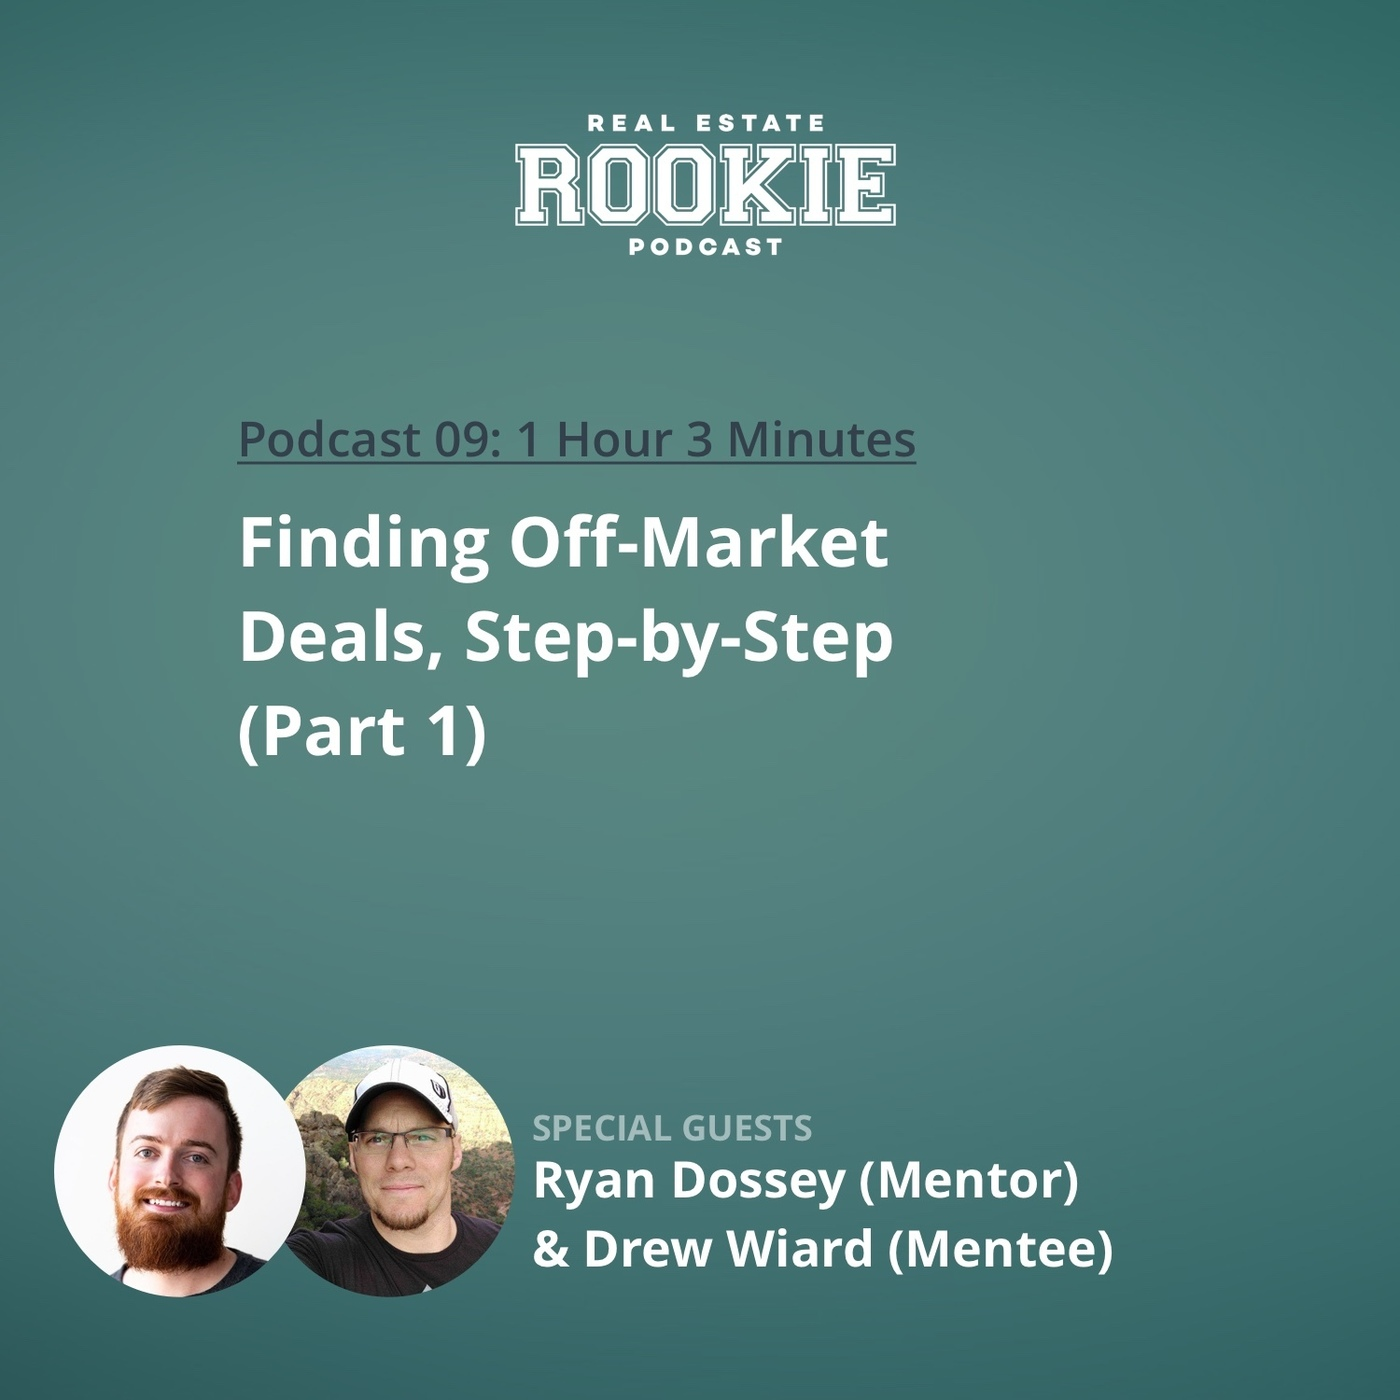 Finding Off-Market Deals, Step-by-Step with Ryan Dossey (Mentor) and Drew Wiard (Mentee): Part 1